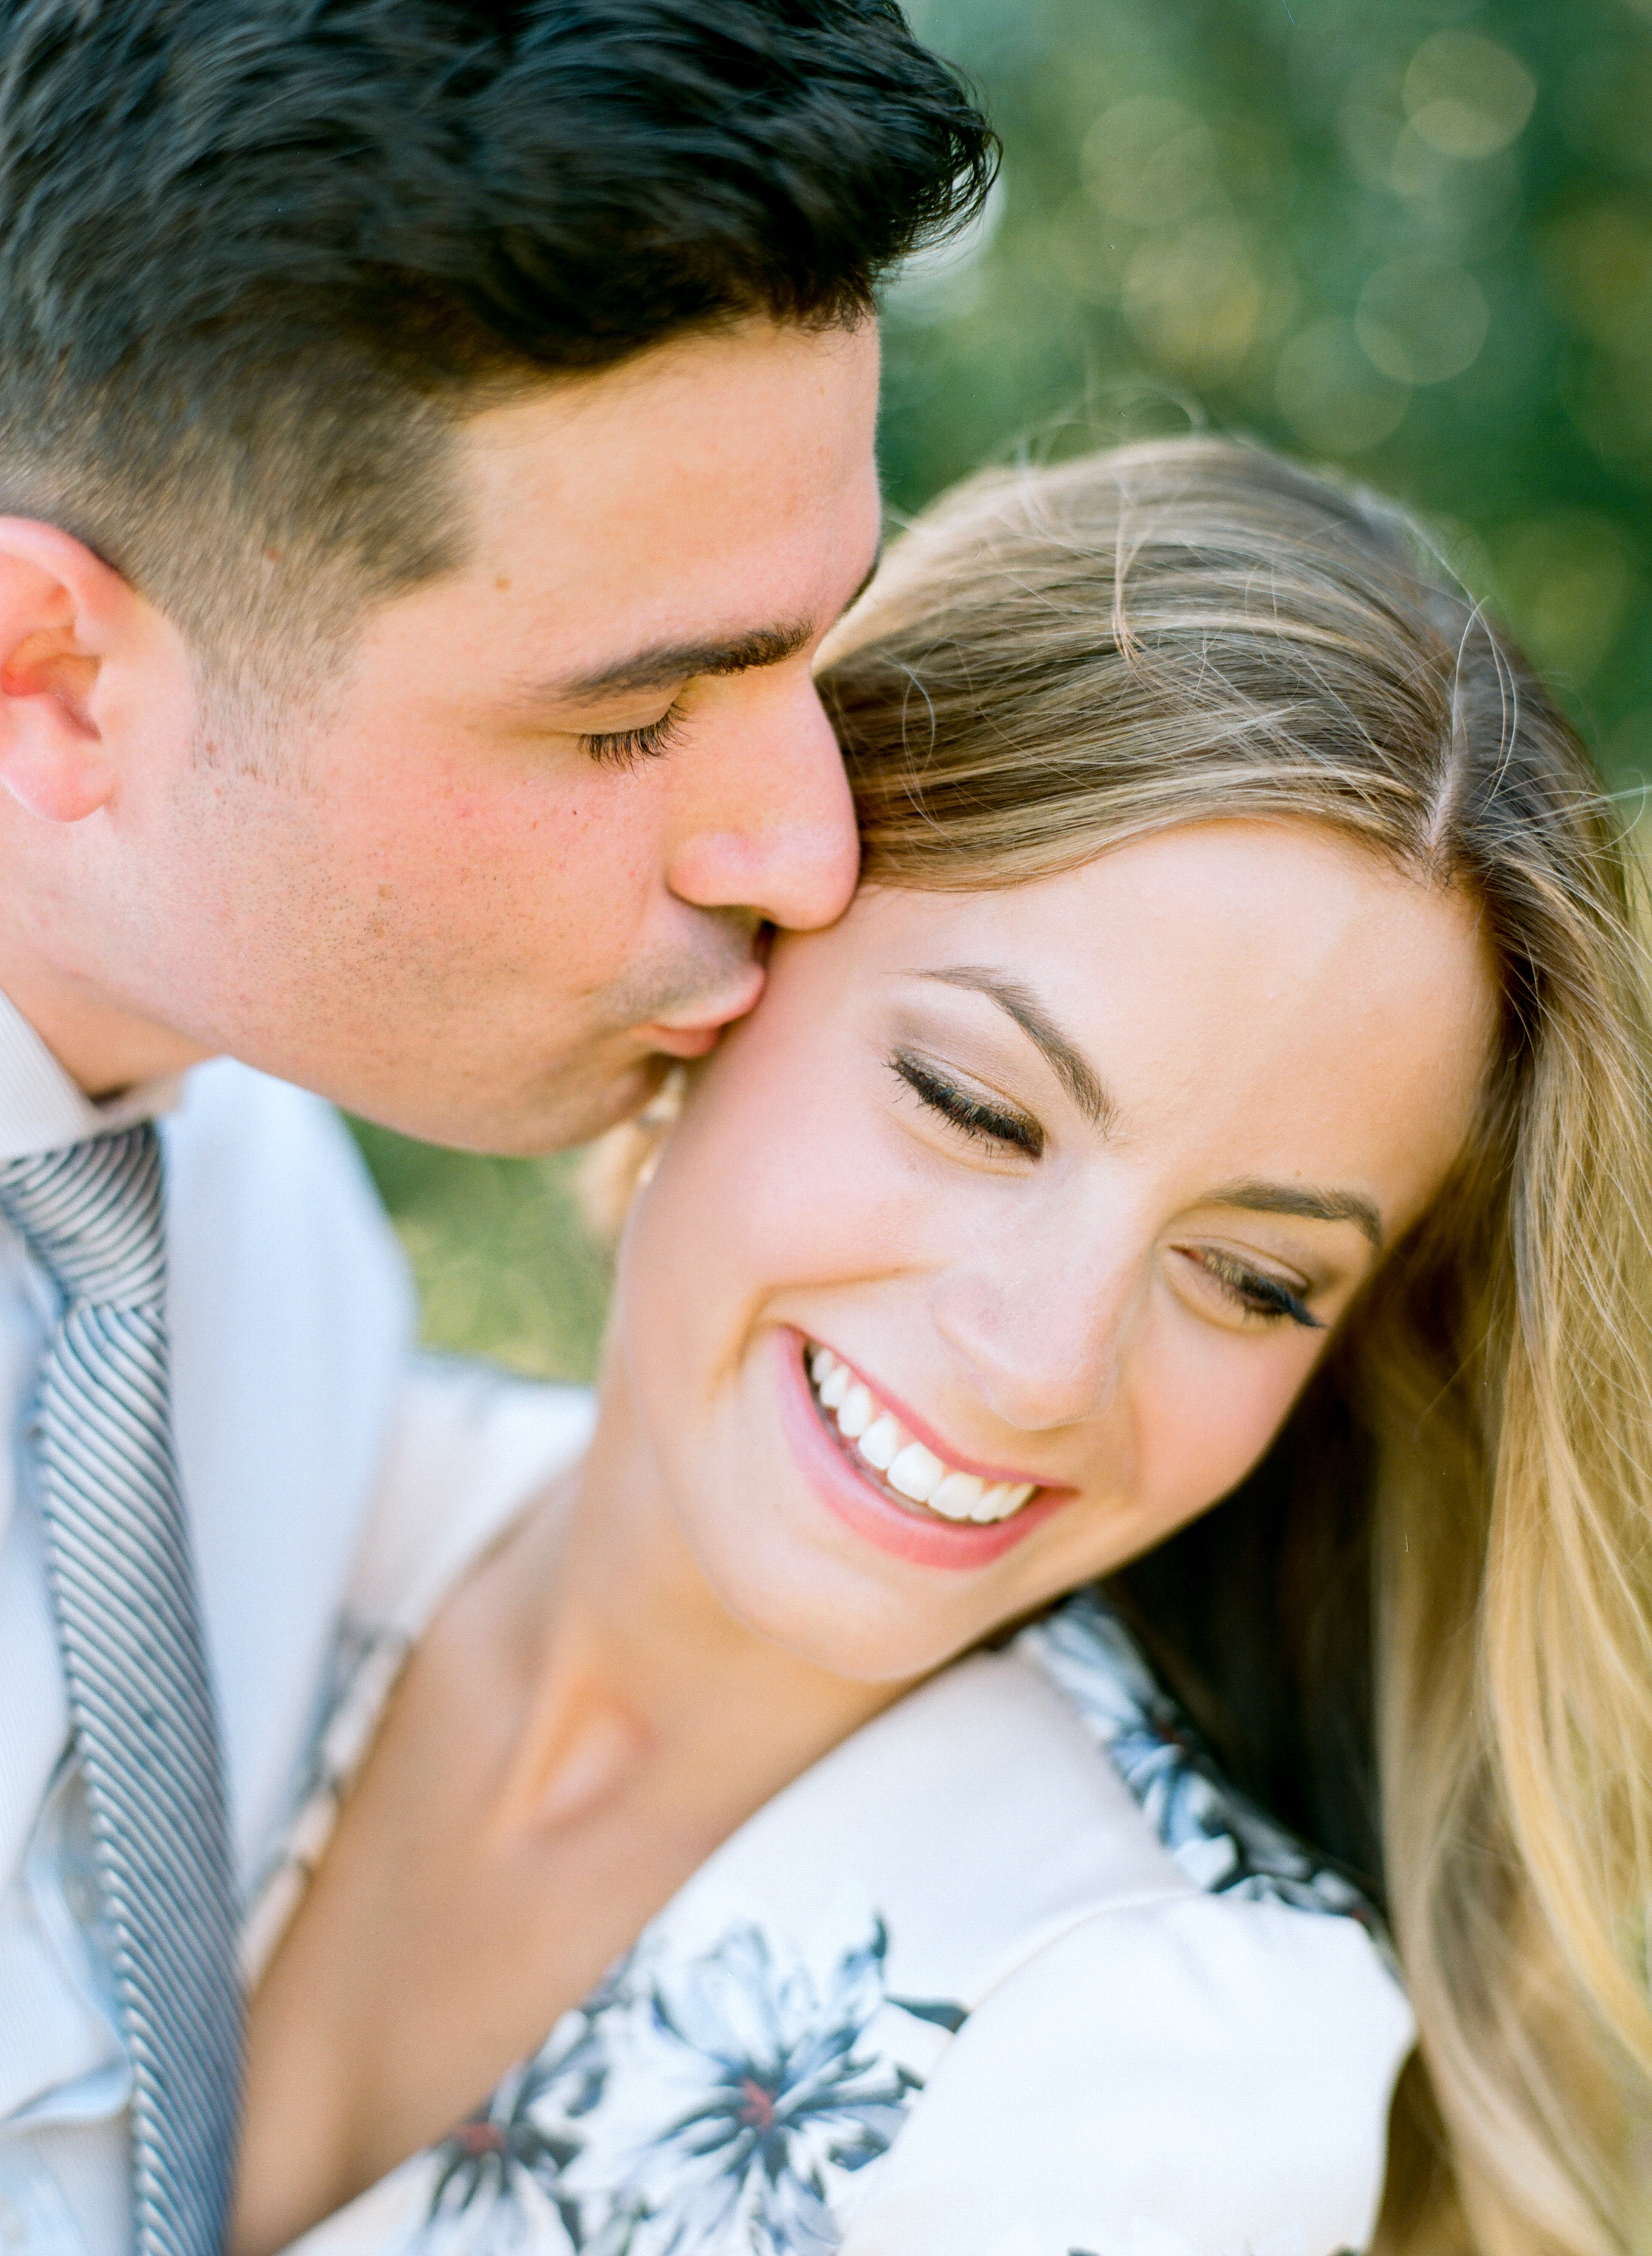 Dana-Fernandez-Photography-Houston-Engagement-Wedding-Film-Photographer-12.jpg